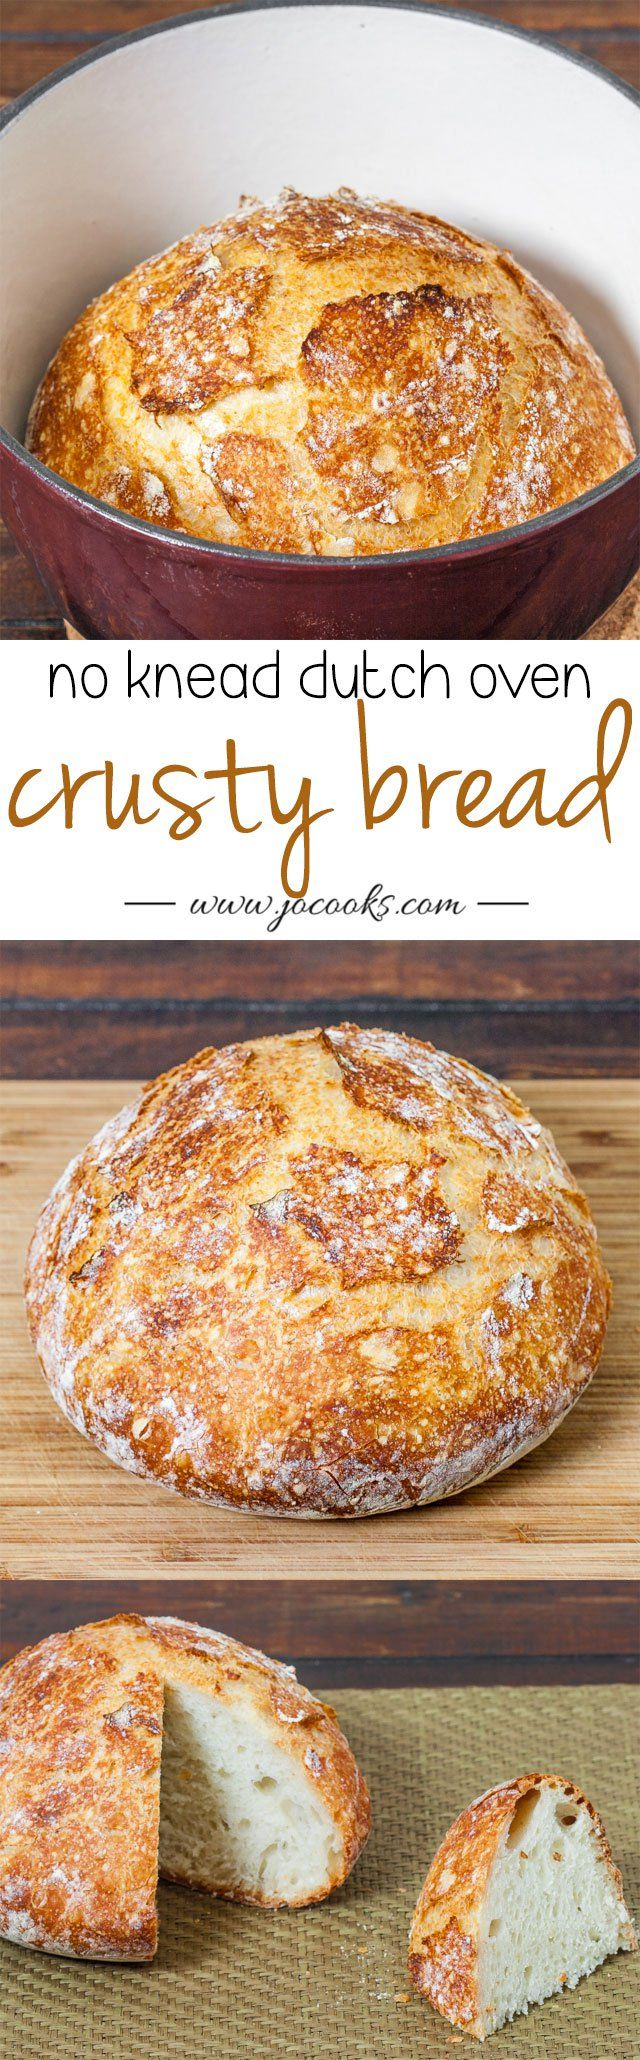 No Knead Dutch Oven Crusty Bread - no kneading required, 4 simple ingredients, baked in a Dutch Oven! The result is simple perfection, hands down the best bread you'll ever eat!  Pinterest | https://pinterest.com/elcocinillas/